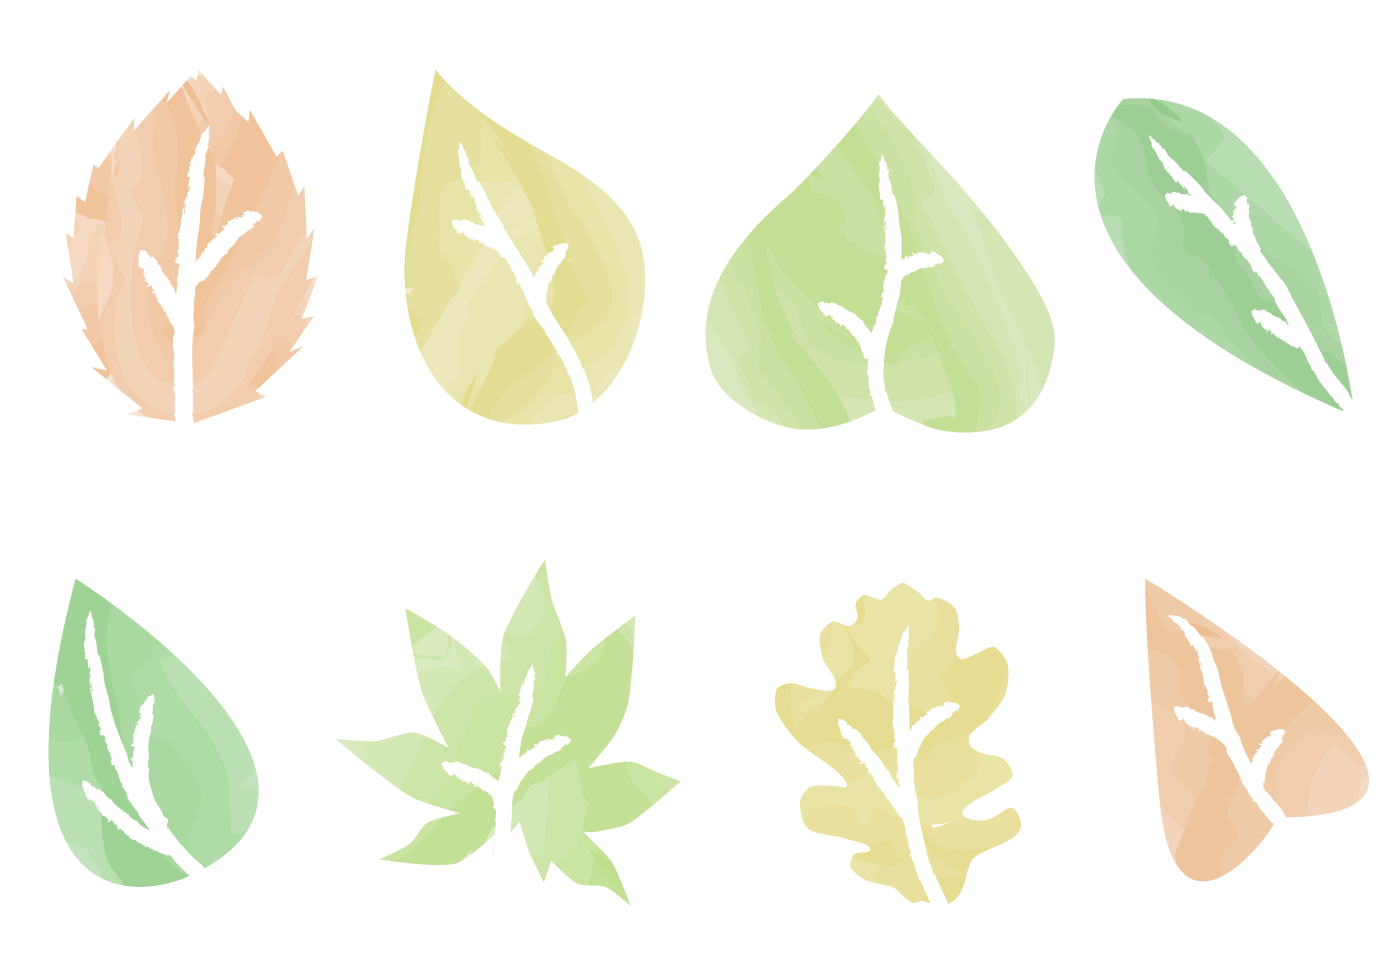 Tea Font Art Word Art With Tea Leaves Font Icons Word Icons Art Icons Png And Vector With Transparent Background For Free Download In 2020 Watercolor Flower Illustration Art Icon Flower Illustration